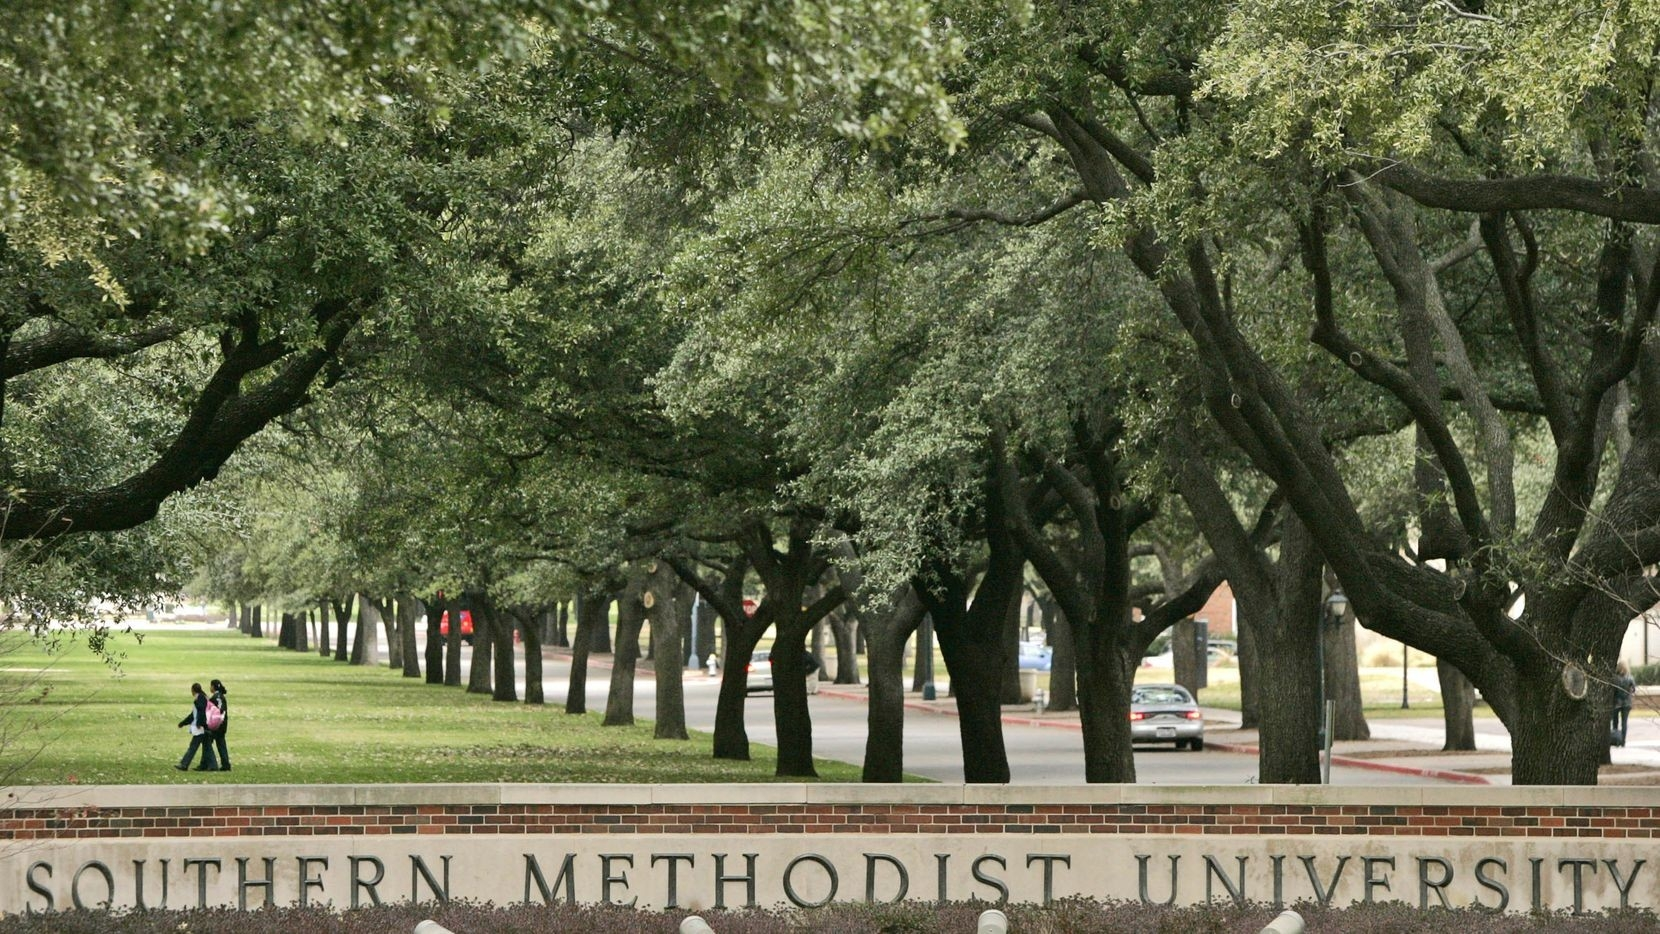 Smu Waives Act/Sat Requirements For 2021 Admissions  2021 Methodist Commentary